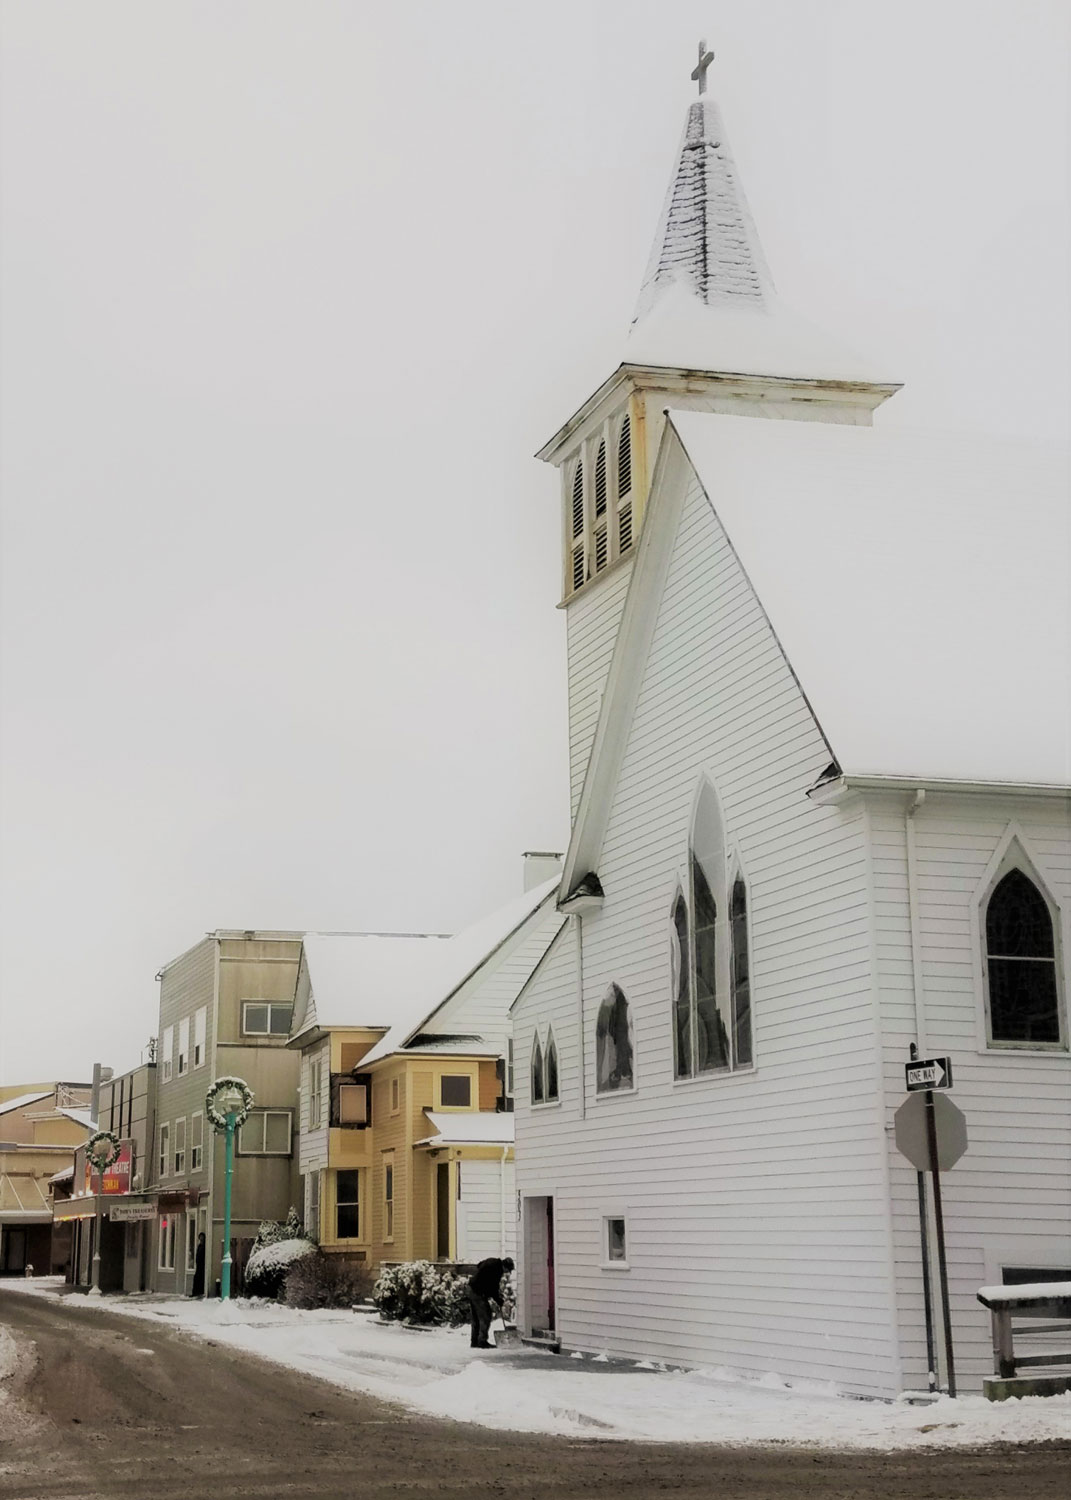 Looking down Mission Street to St. John's Church and the Gross Alaska Cinema: Ketchikan's two screen movie theater.